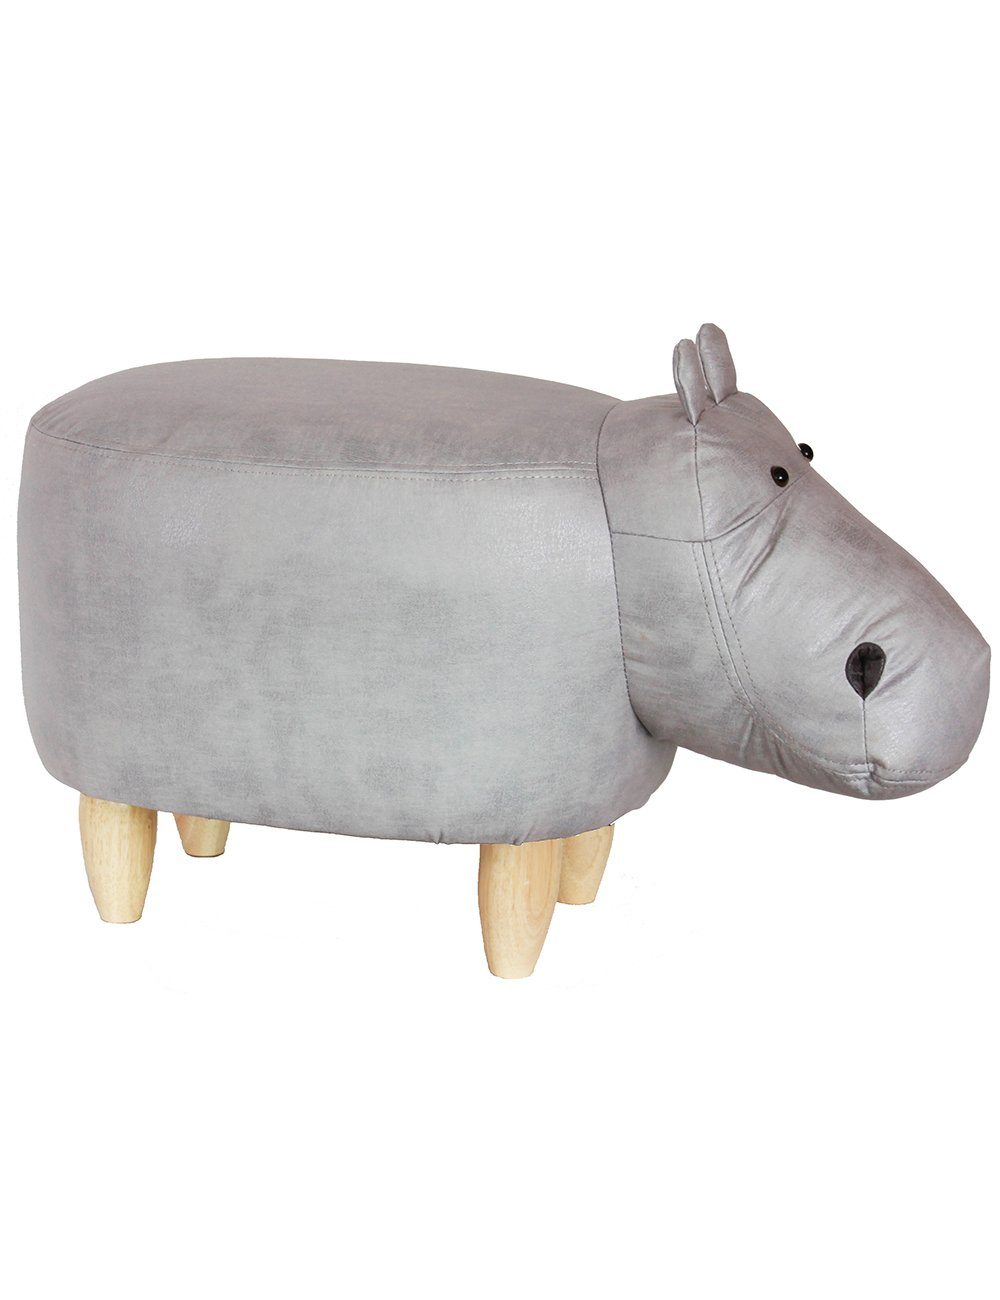 HAOSOON Animal ottoman Series Ottoman Footrest Stool with Vivid Adorable Animal-Like Features(Hippo) (grey) by HAOSOON (Image #3)